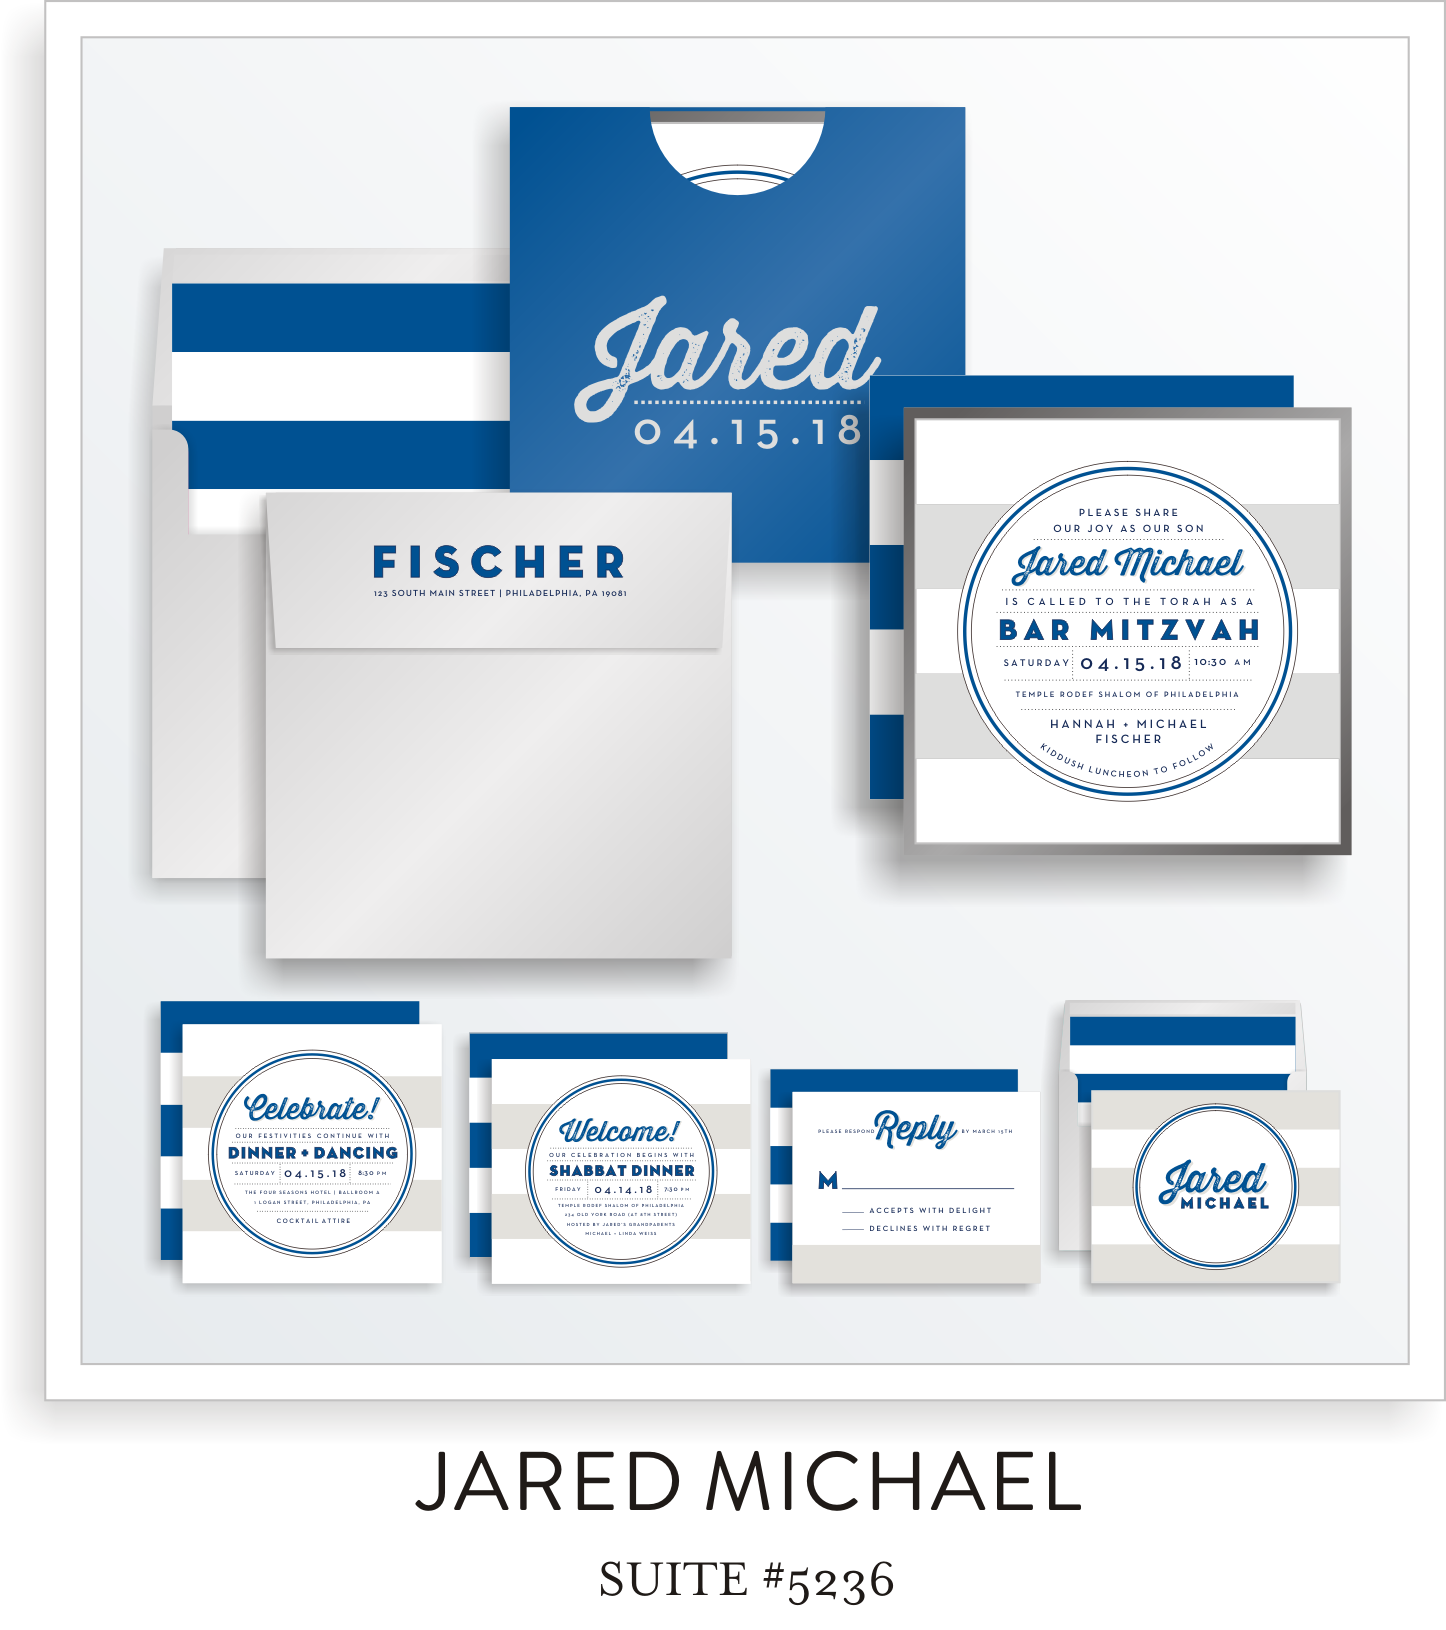 Copy of <a href=/bar-mitzvah-invitations-5236>Suite Details→</a><strong><a href=/jared-michael-in-colors>see more colors→</a></strong>